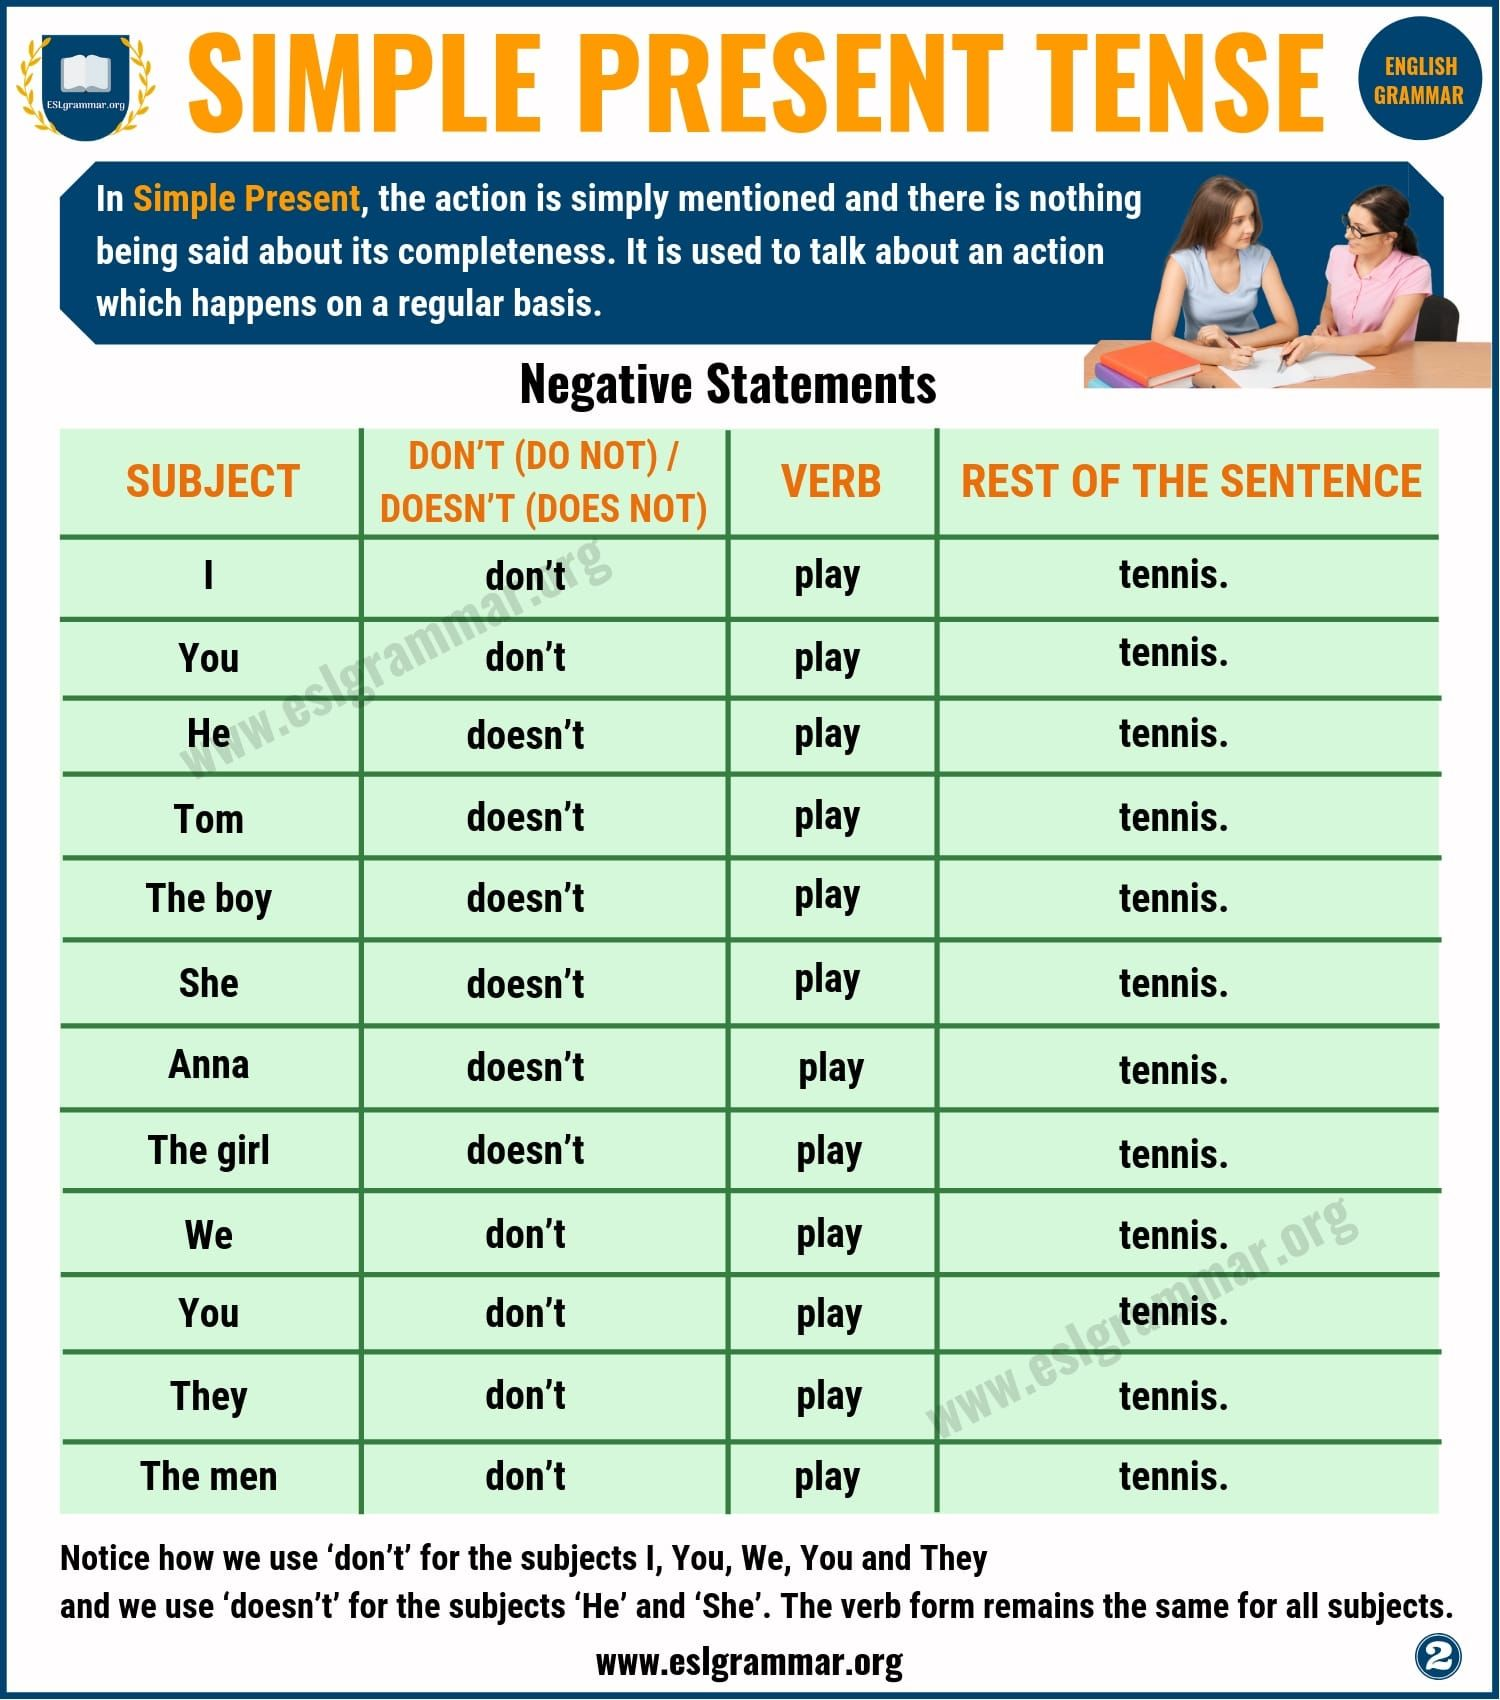 Simple Present Tense Definition And Useful Examples With